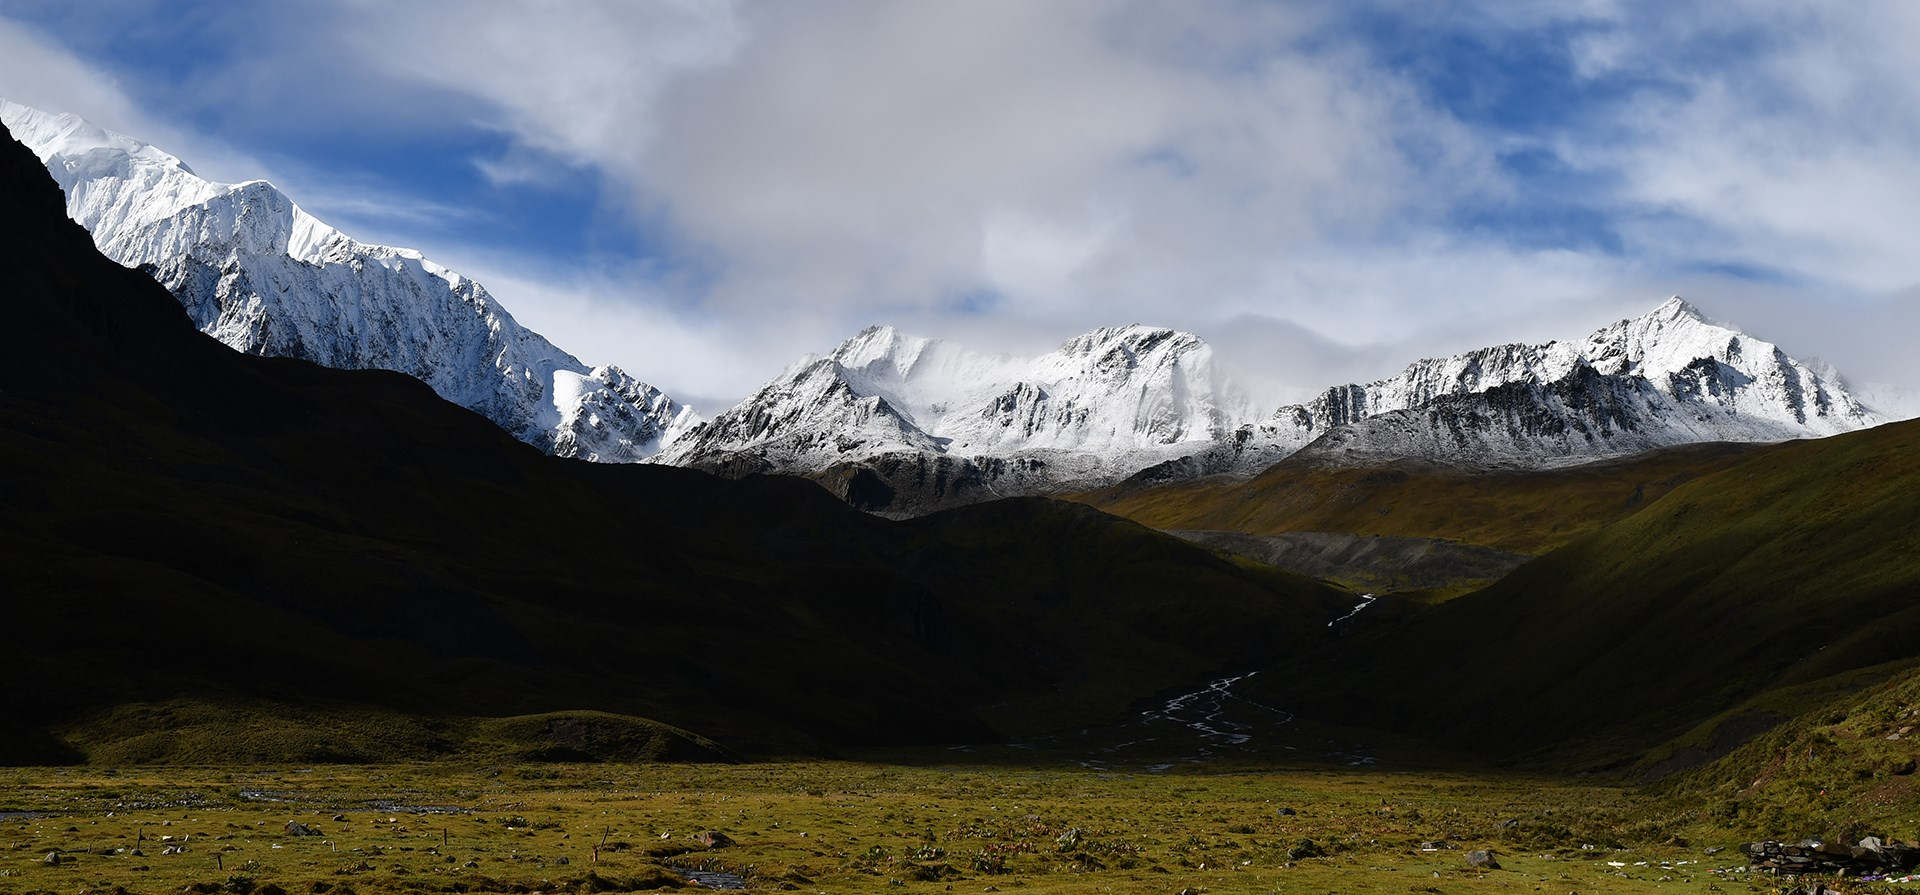 Trekking at Gongga Mountain in West Sichuan